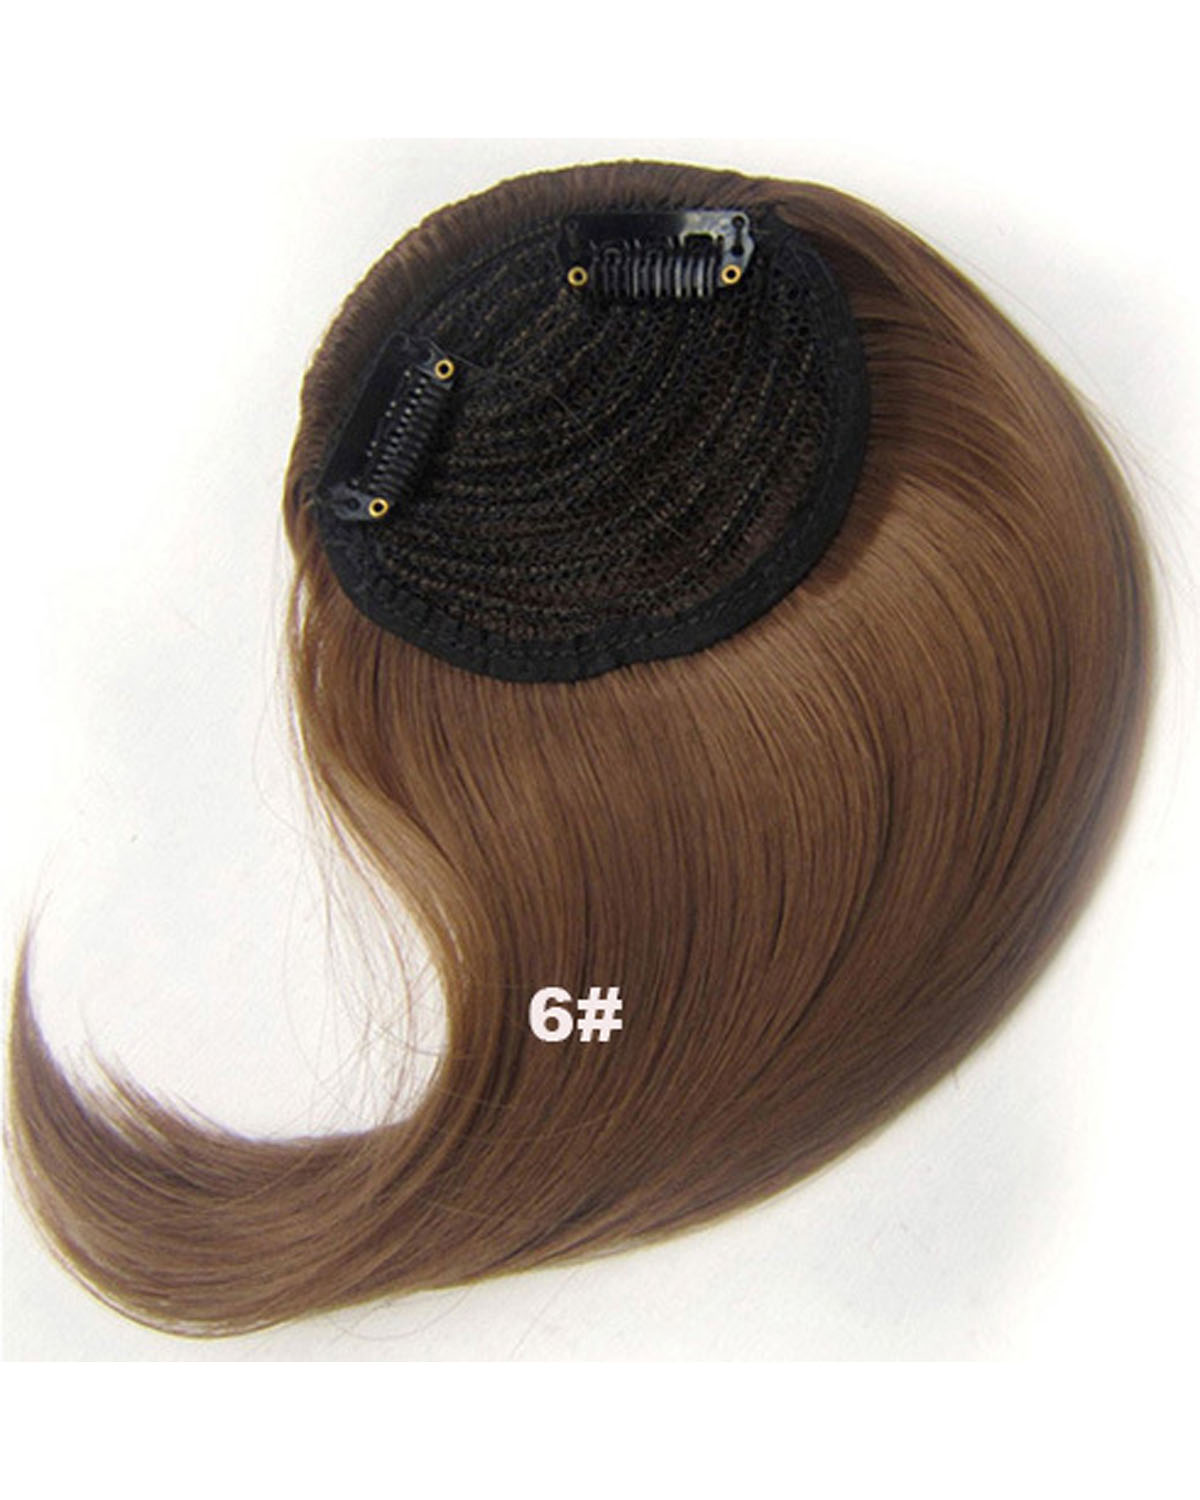 Girls Cosmopolitan Straight Short Bangs Clip in Synthetic Hair Extension Fringe Bangs Hairpiece 6#